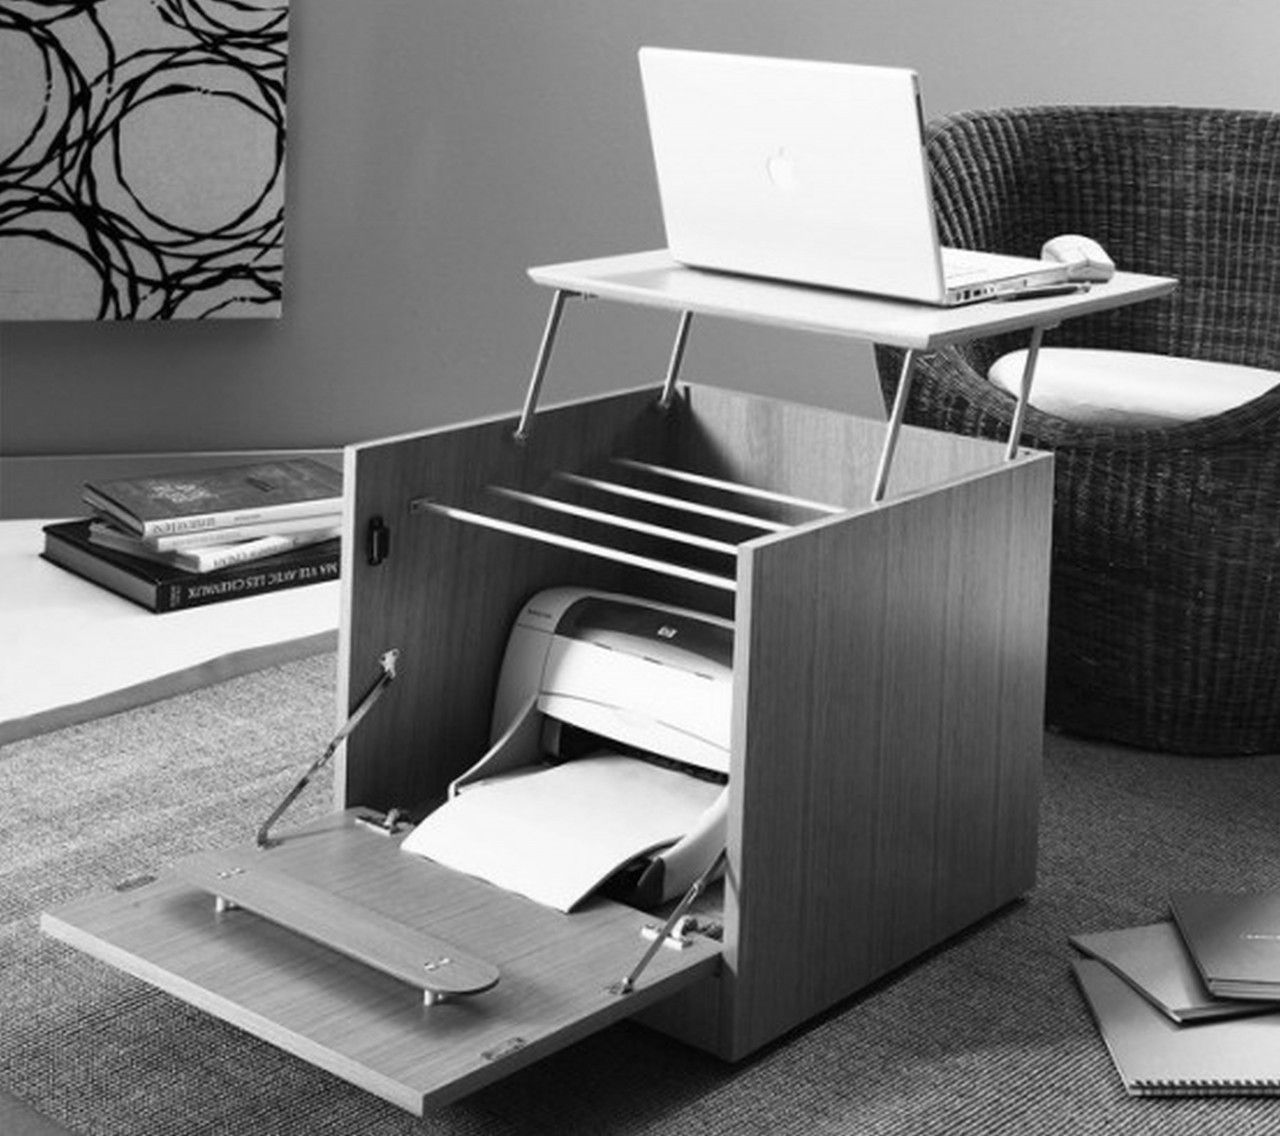 Side Table That Doubles As A Laptop Printer Hideaway Desk Very Convenient For The Living Room